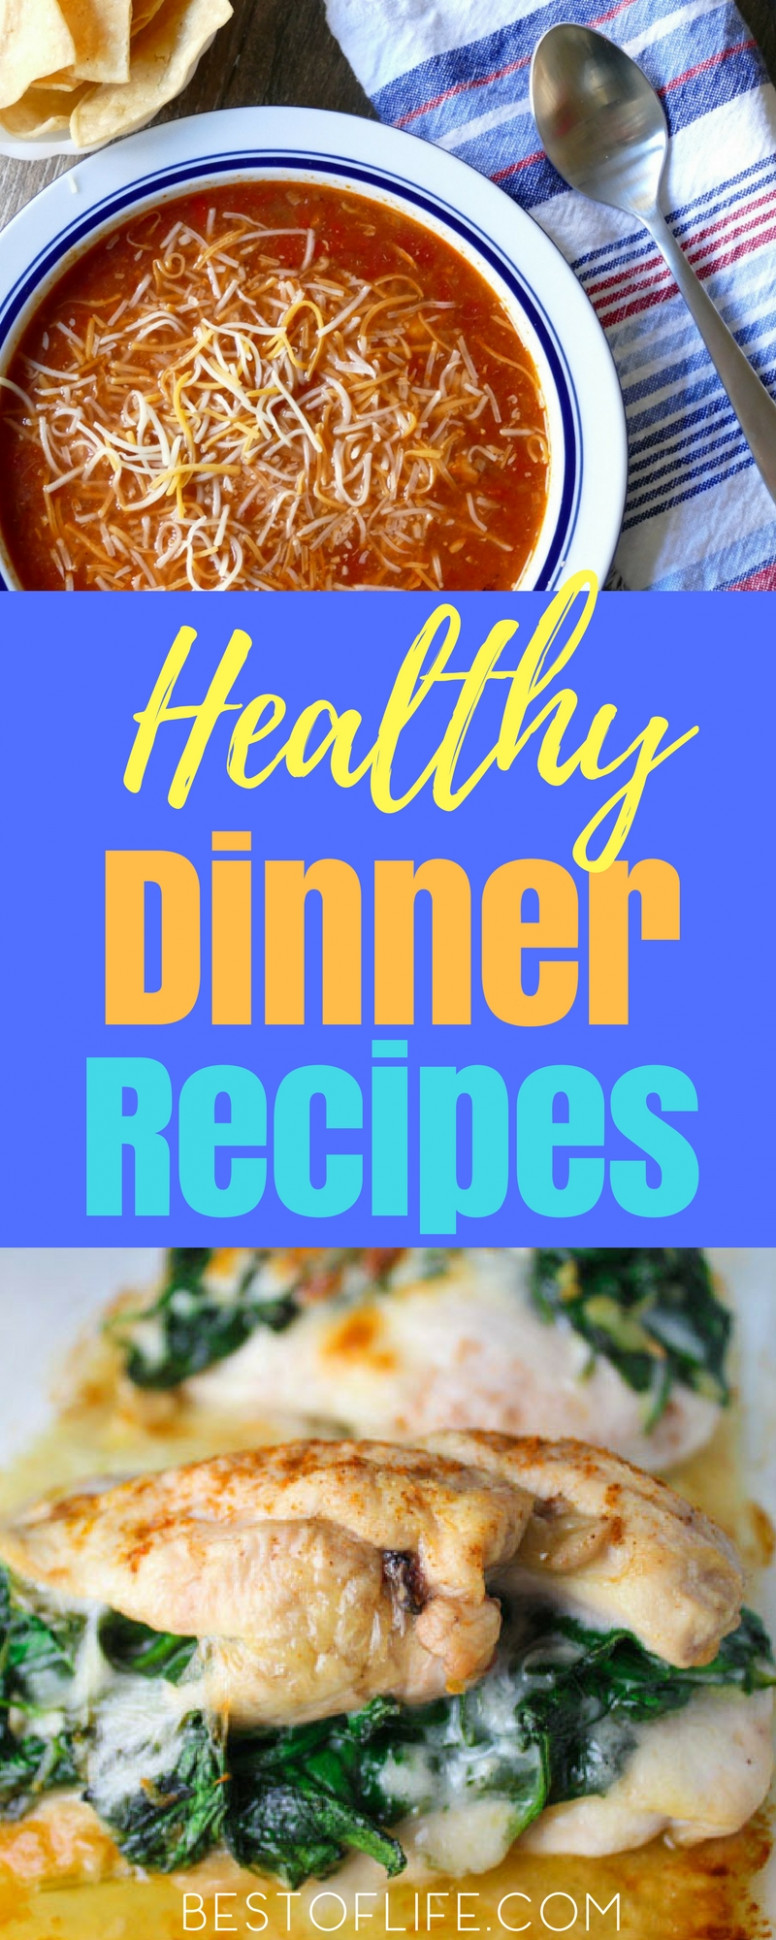 12 Healthy Dinner Recipes for Easy Weight Loss - The Best of ..